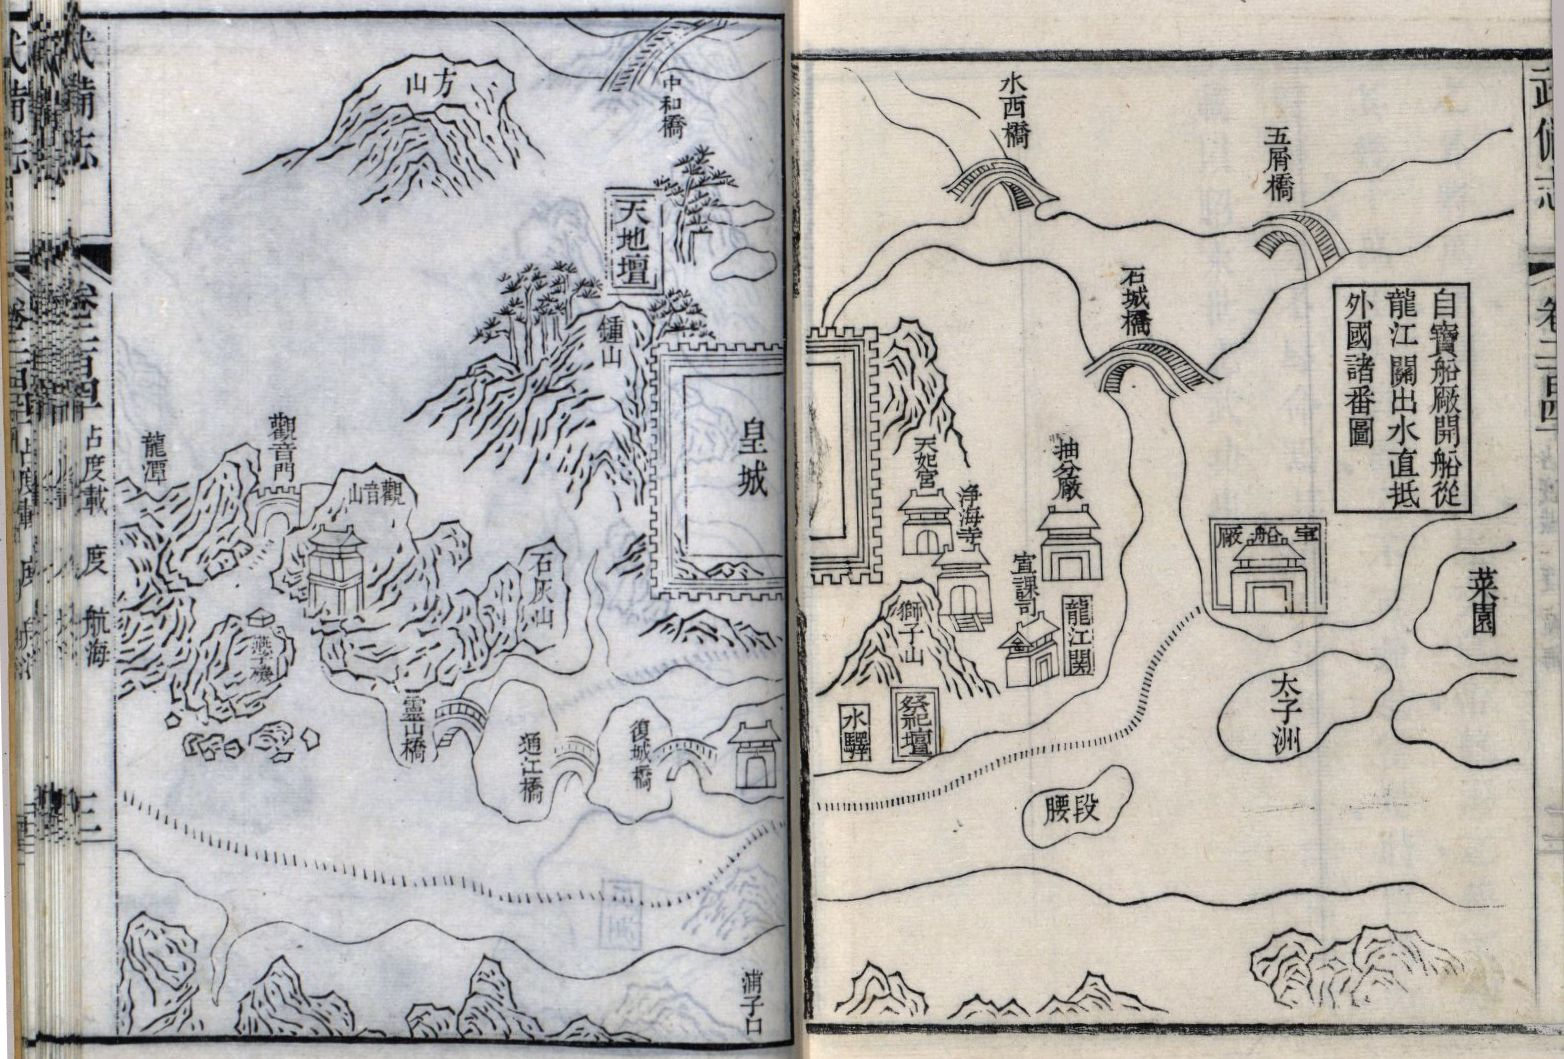 Wu bei zhi 1644 map of Admiral Zheng He's Voyage, page pair 3 (1 of 20)